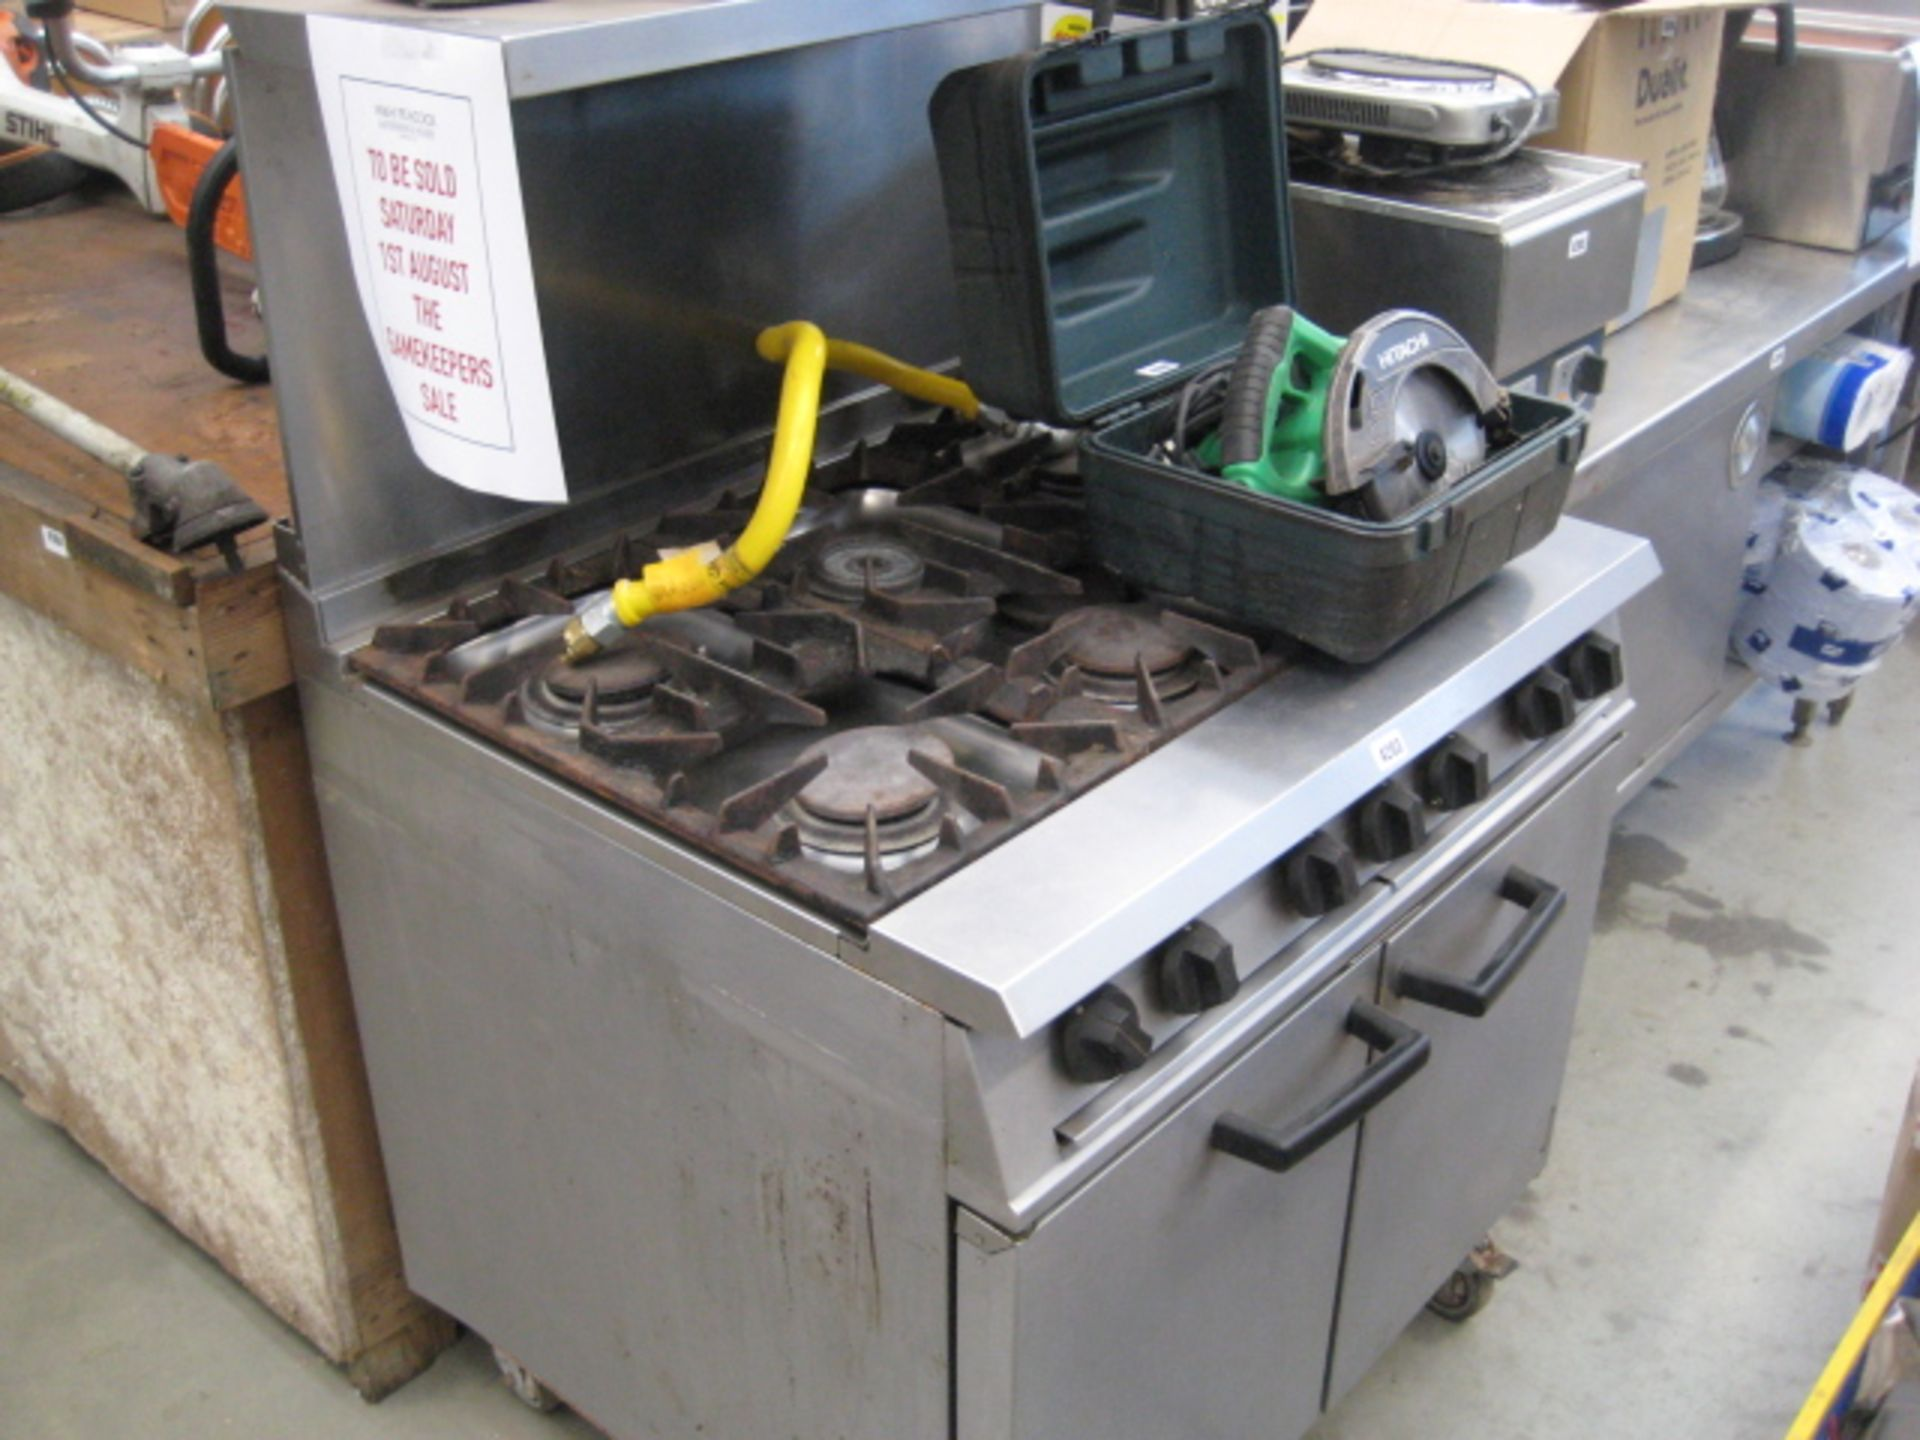 Lot 4203 - Falcon double door gas oven with 6 burner hob